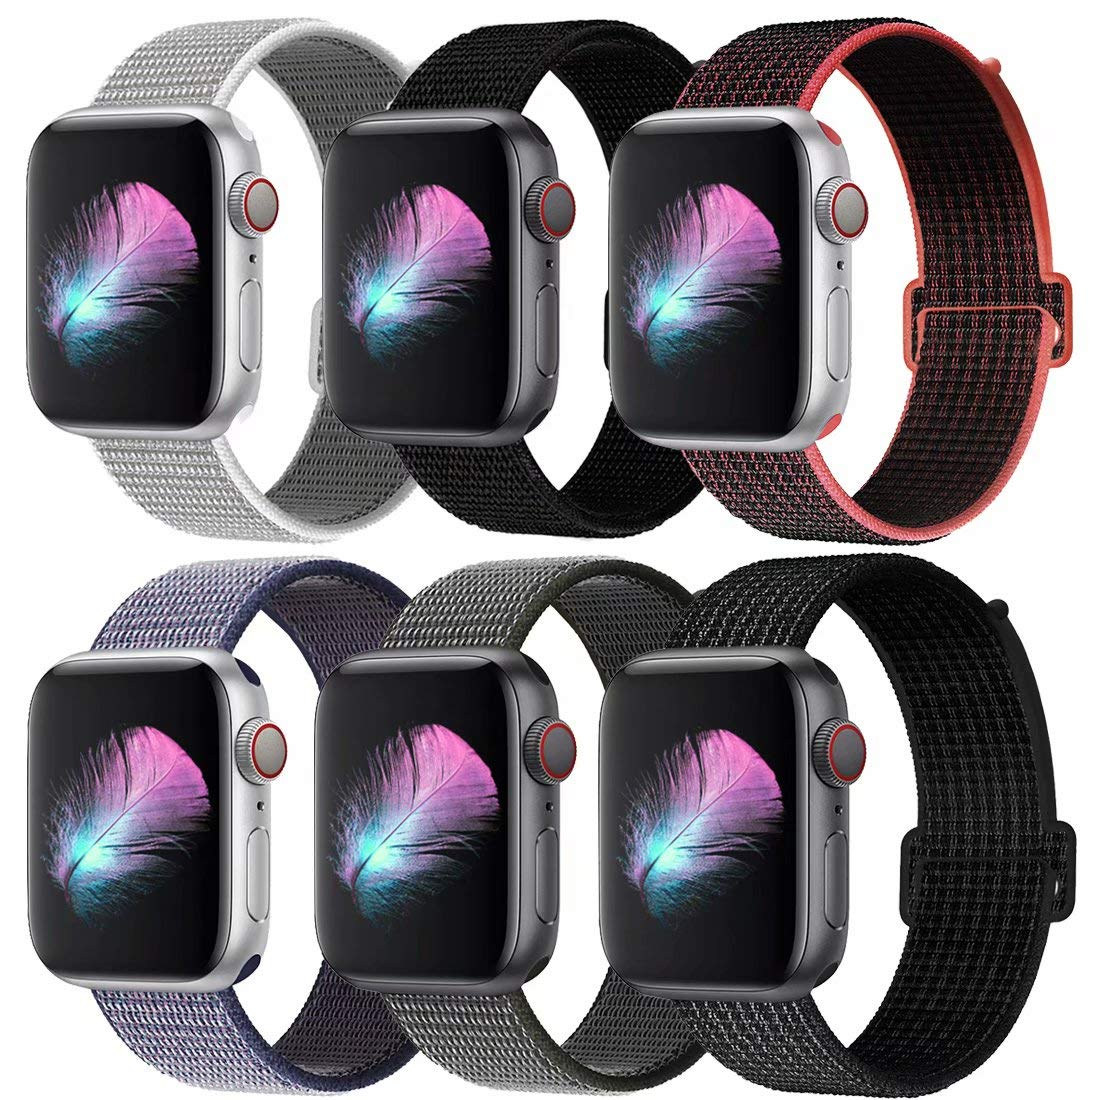 HILIMNY Compatible for Apple Watch Band 38mm 40mm, New Nylon Sport Loop, Adjustable Closure Wrist Strap, Replacement Band Compatible for iWatch Series 4 3 2 1(38mm 40mm, Colorful)